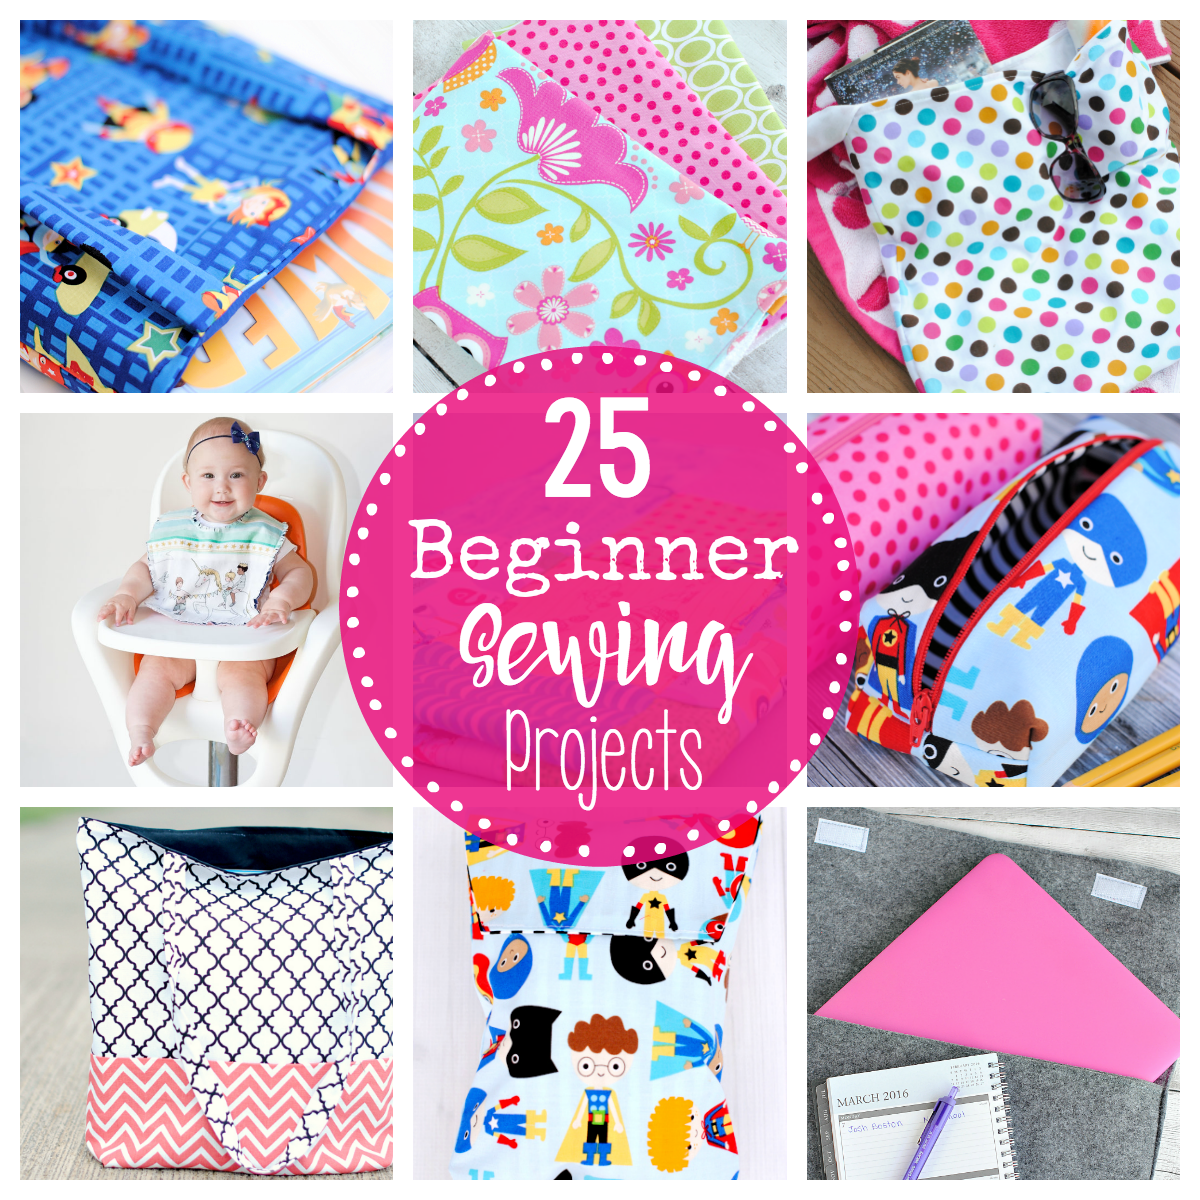 It's just a photo of Smart Printable Sewing Patterns for Beginners